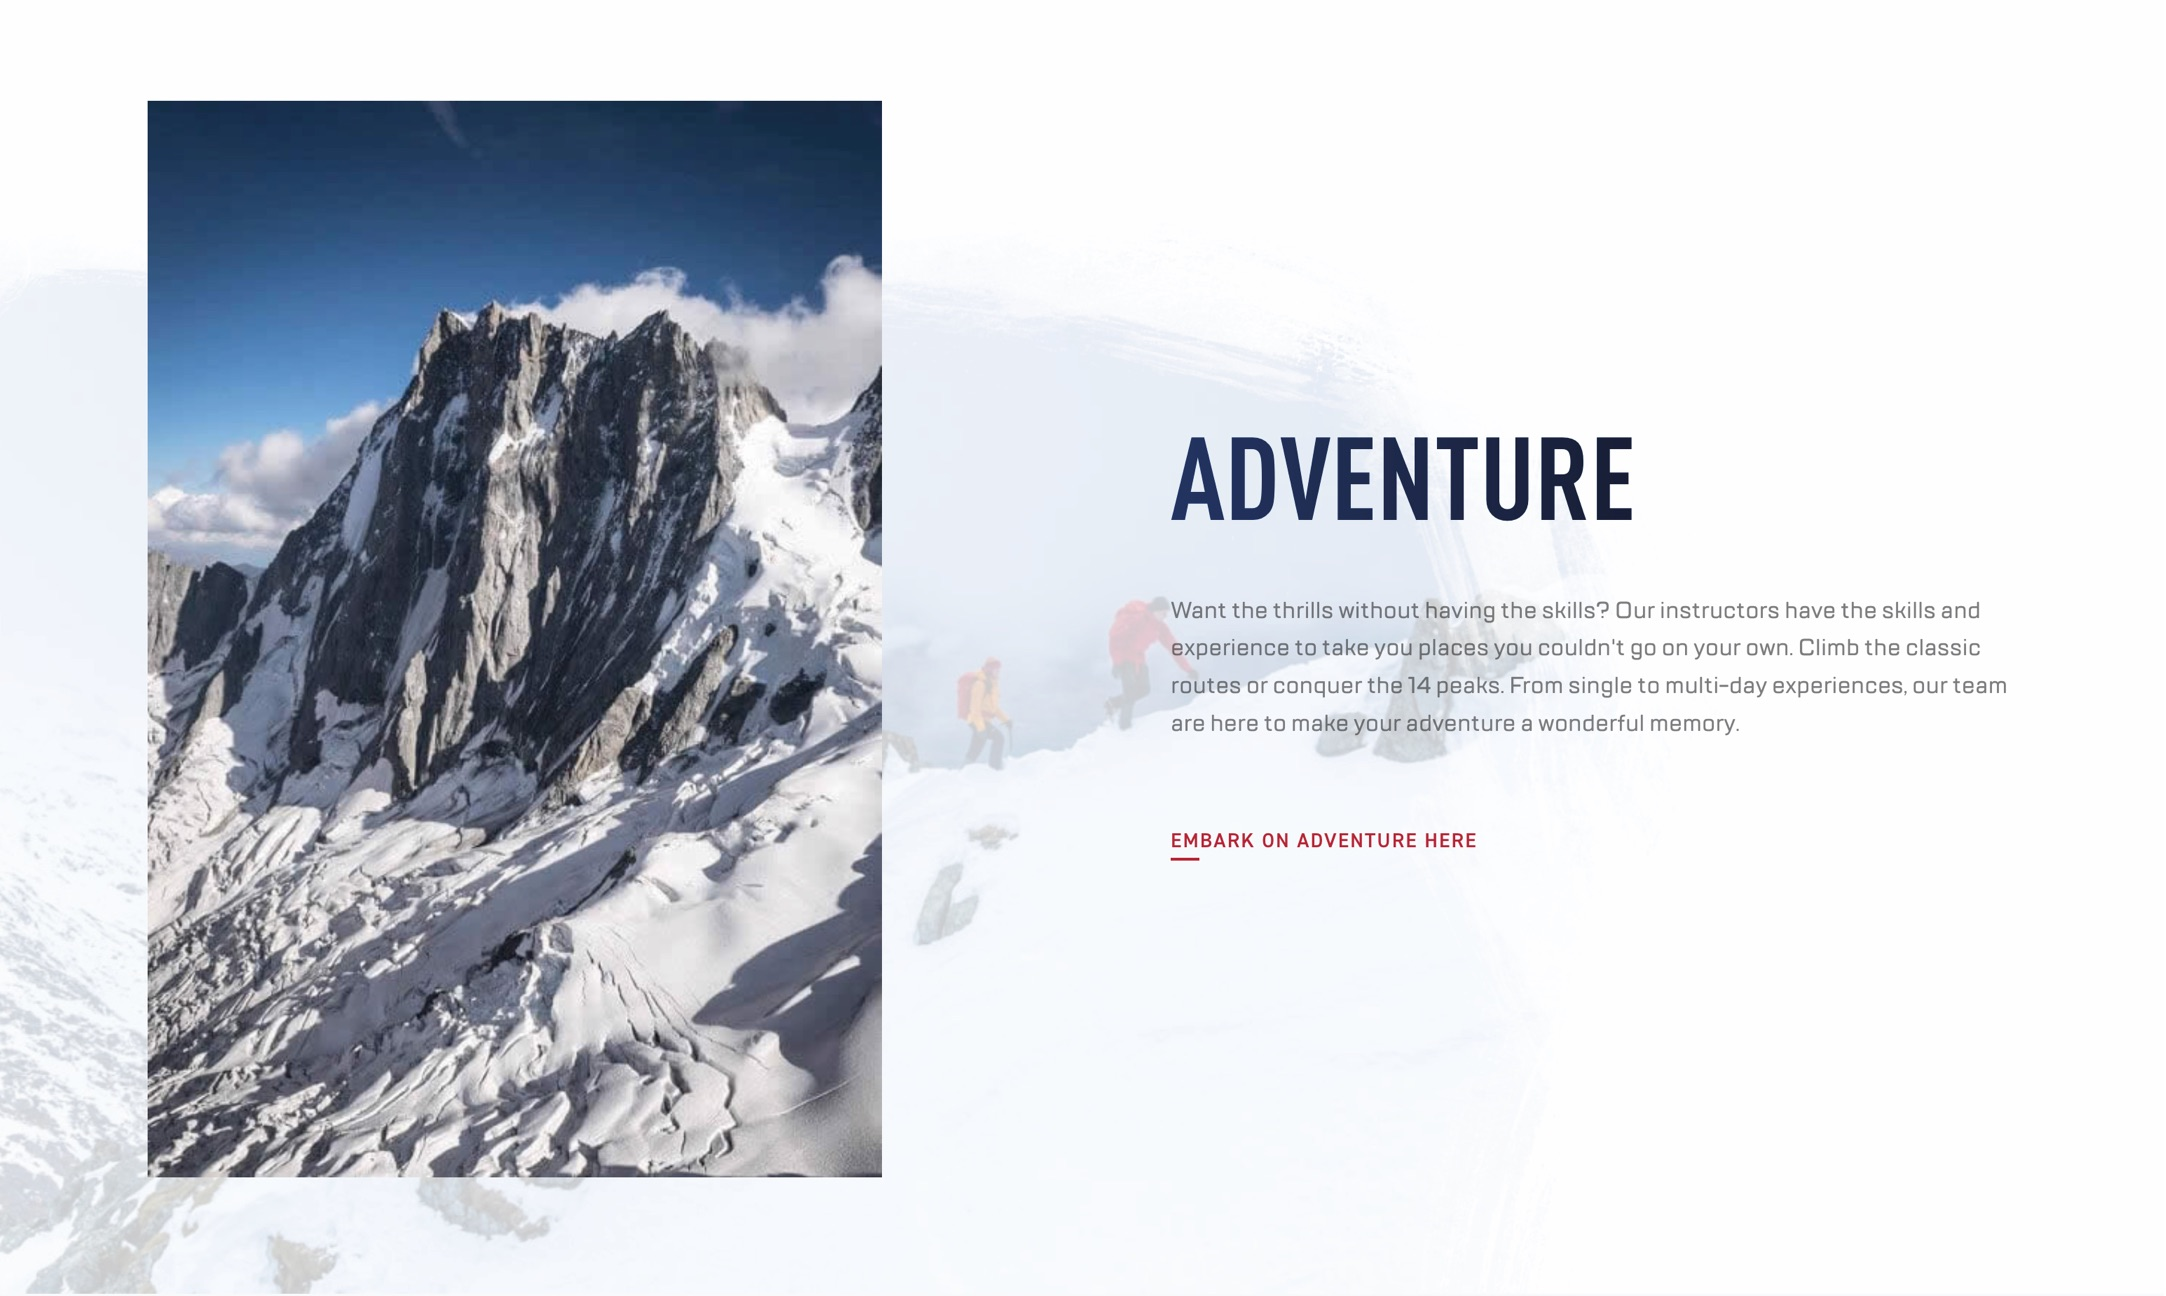 Adventure text over mountain background